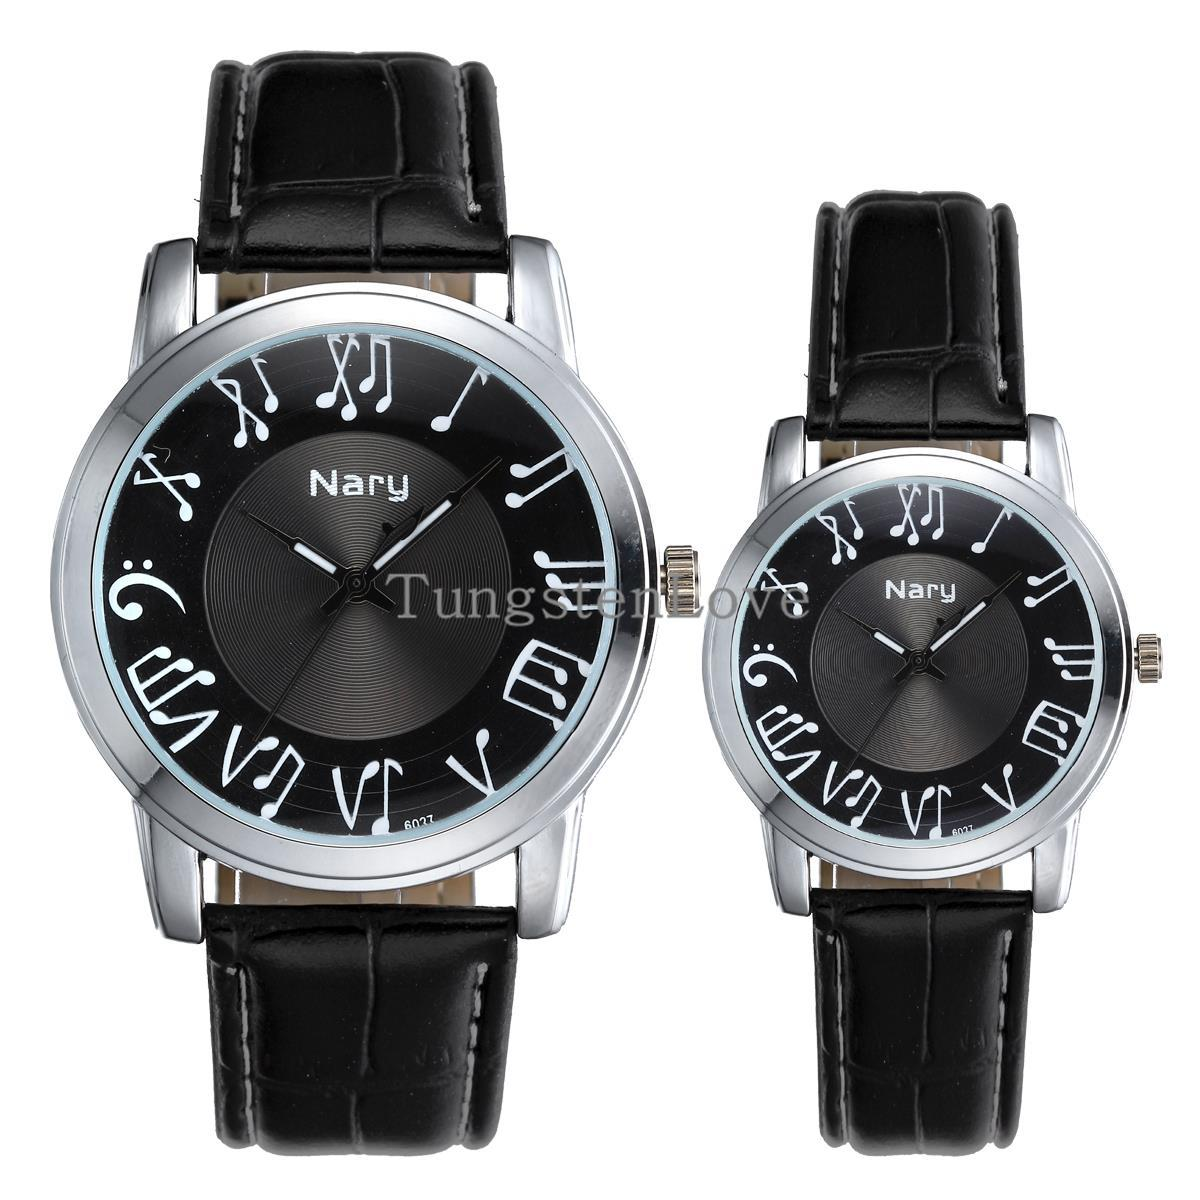 1 piece 2015 Lovers Fashion Mens Ladies Black Earl Music Notes Couples Wrist Watches PU Leather Wristwatch for men women gifts(China (Mainland))